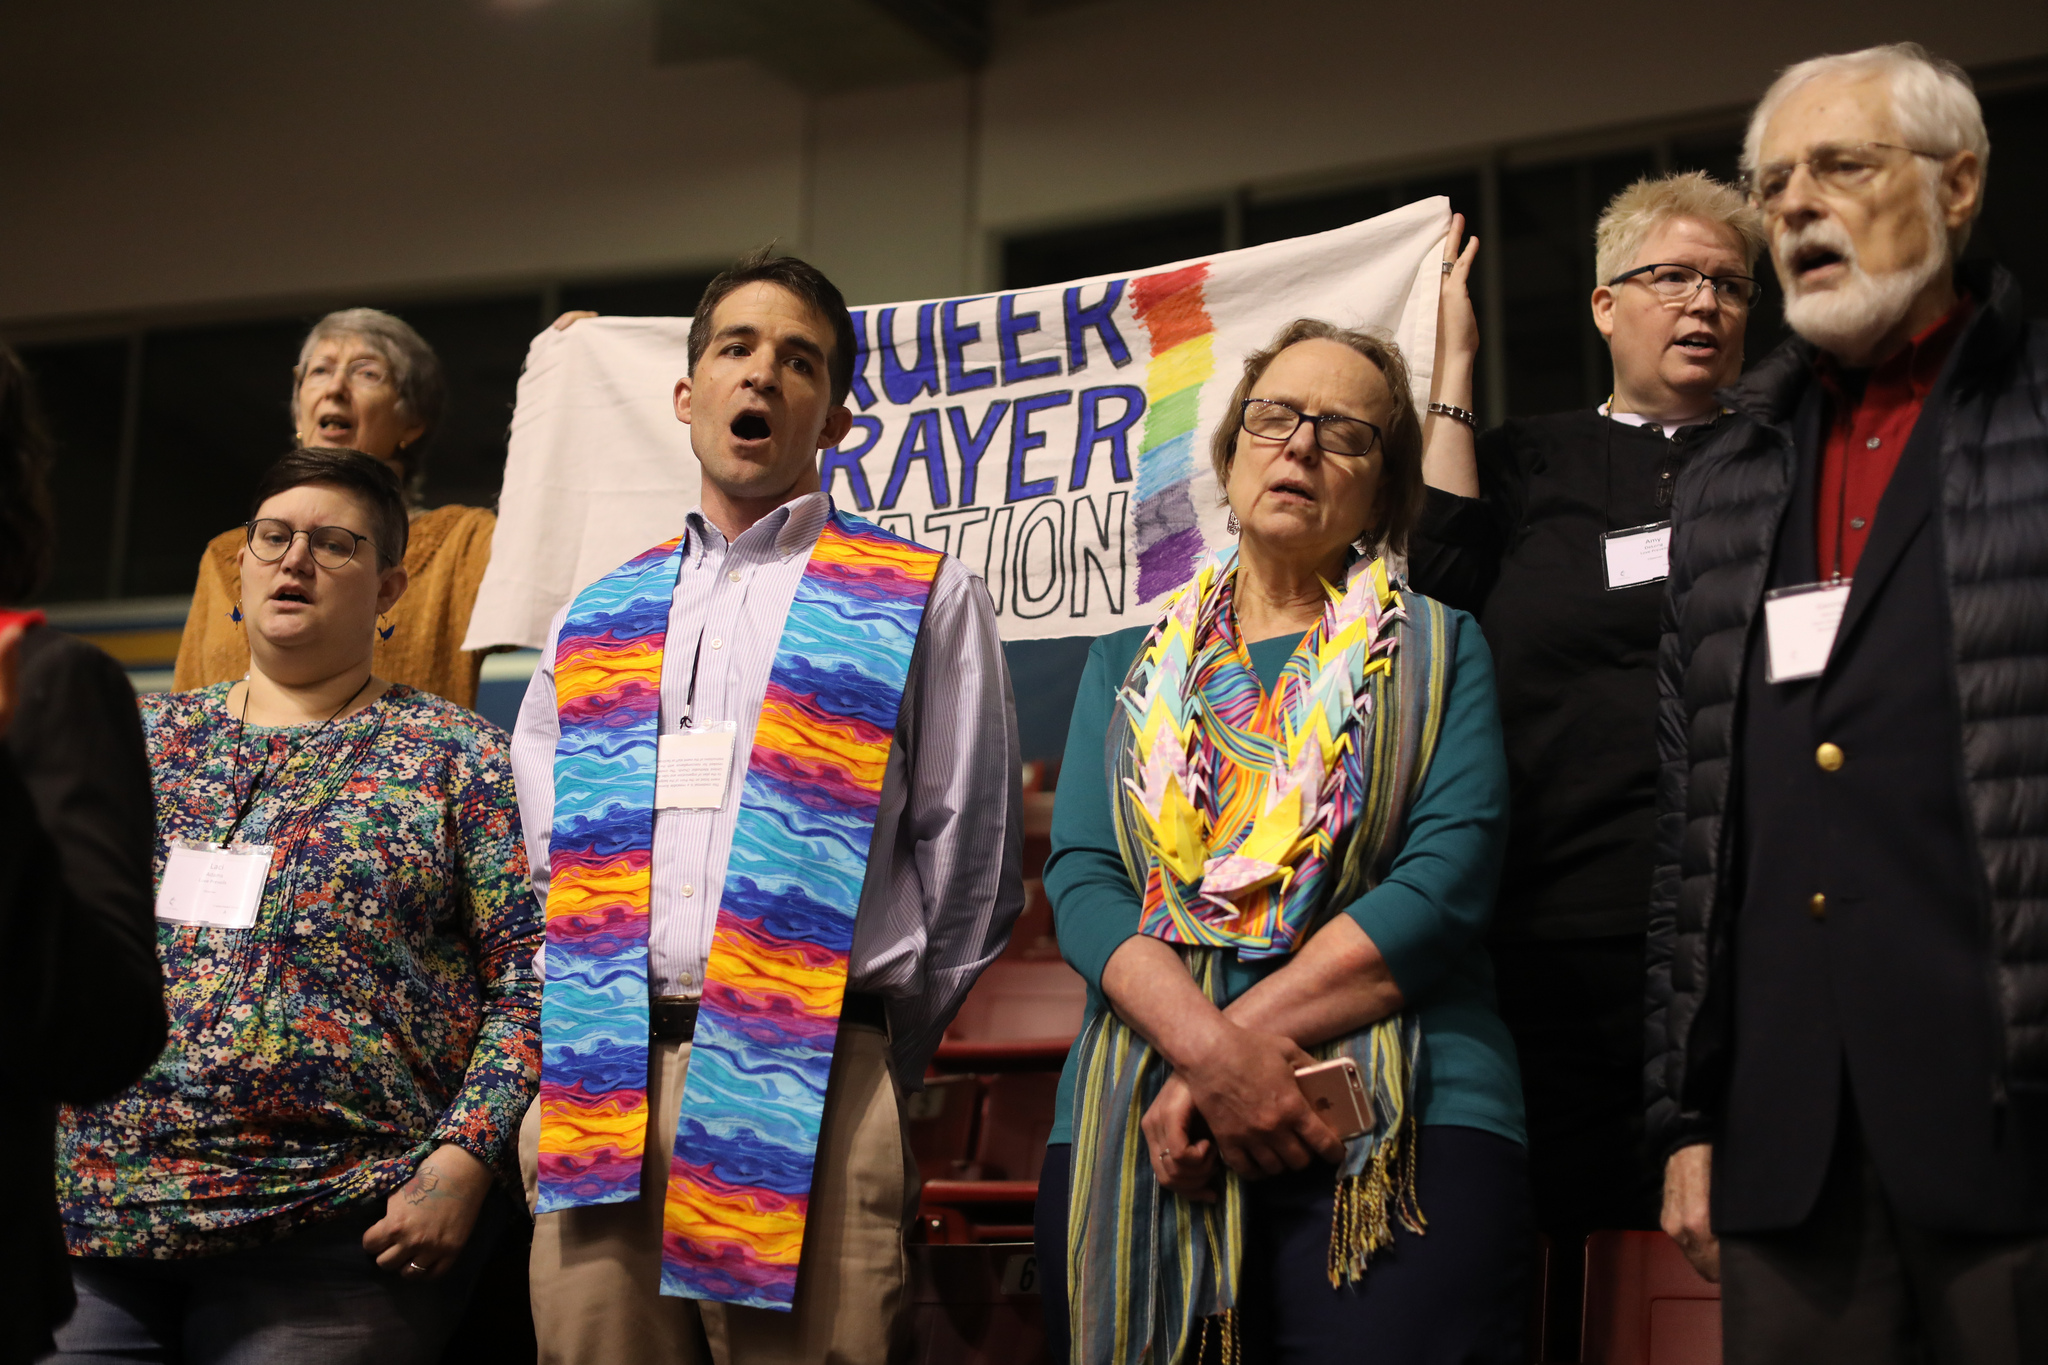 """The Rev. Will Green (center) leads the singing of """"Jesus Remember Me When You Come Into Your Kingdom"""" at the """"Queer Prayer Station"""" during the Feb. 23 morning of prayer at the 2019 Special Session of the United Methodist General Conference in St. Louis. Photo by Kathleen Barry, UMNS."""